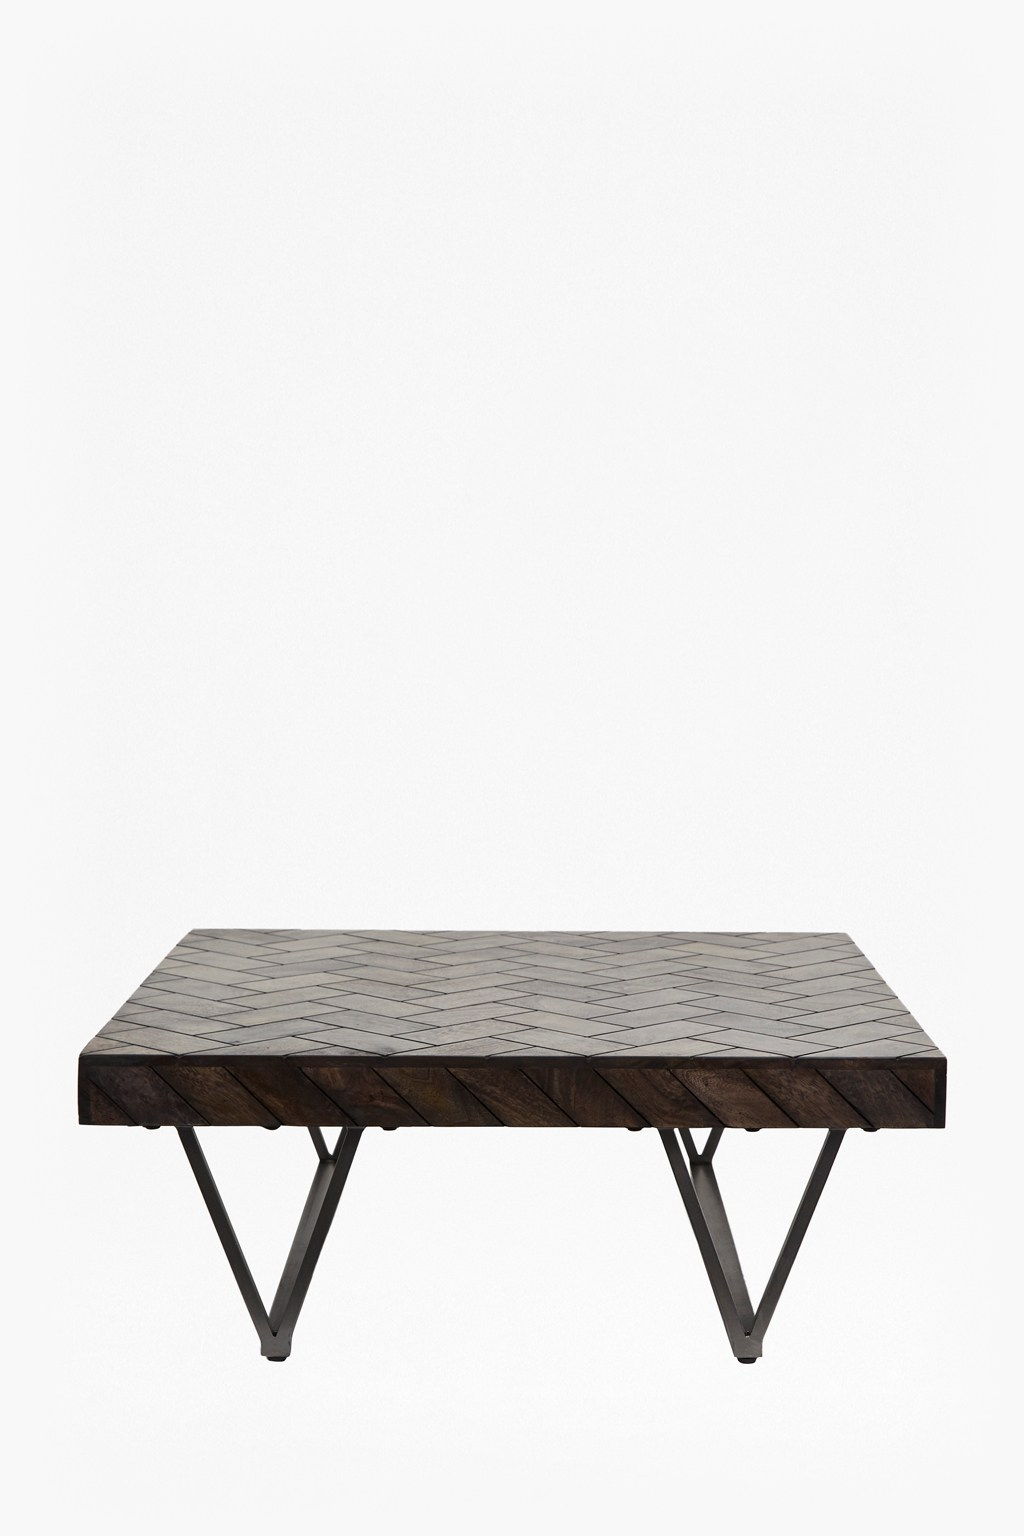 Parquet Wood Metal Coffee Tables Shine Your Light